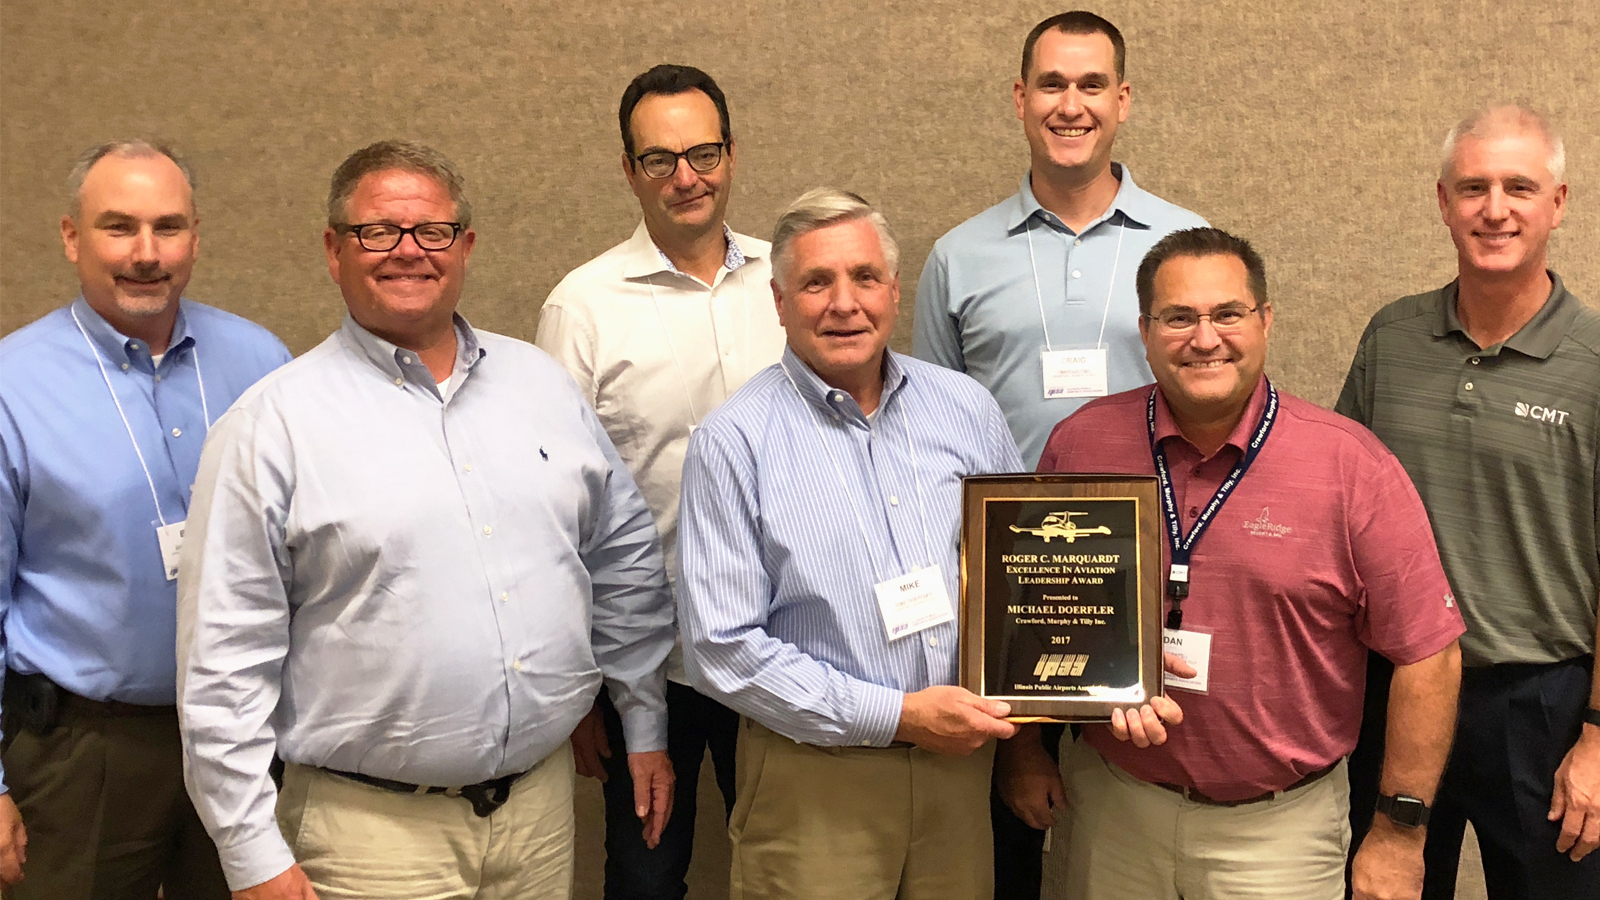 Doerfler with Plaque and CMT group